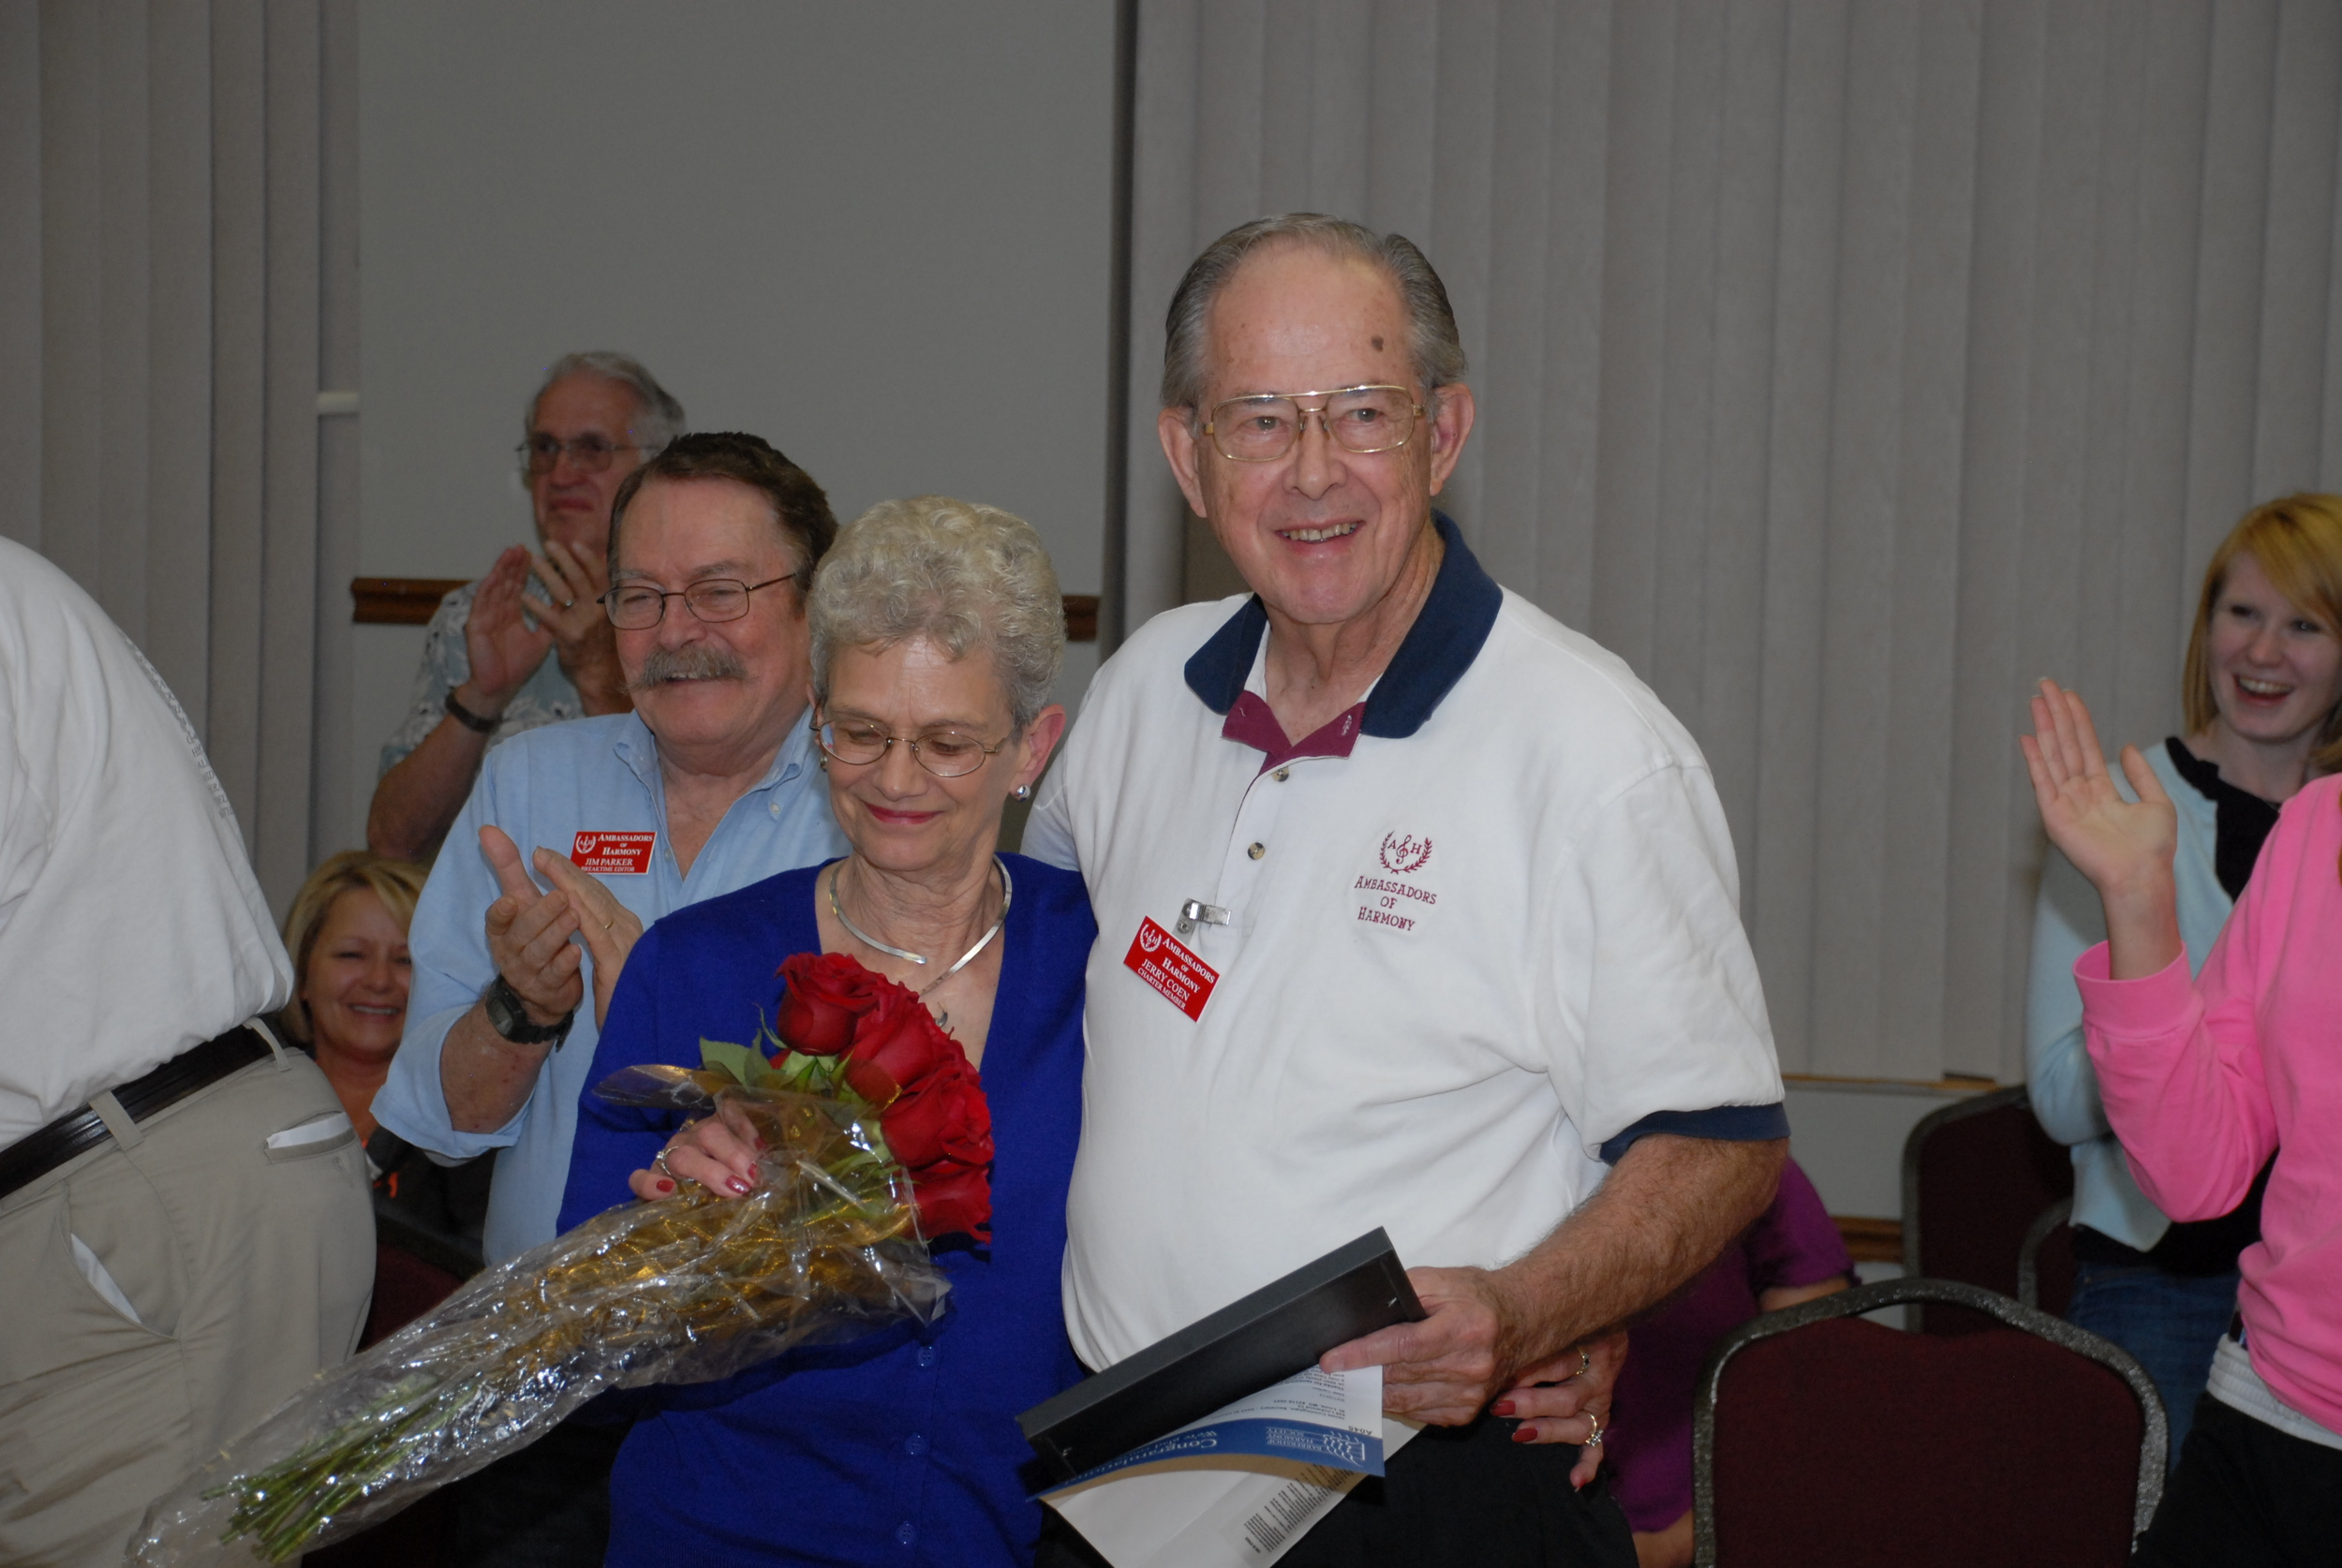 Shirley Coen, left, joins her husband, Jerry, as he receives a 50-year pin and letter congratulating five decades of membership in the Ambassadors of Harmony. Photo by Bob Griesedieck